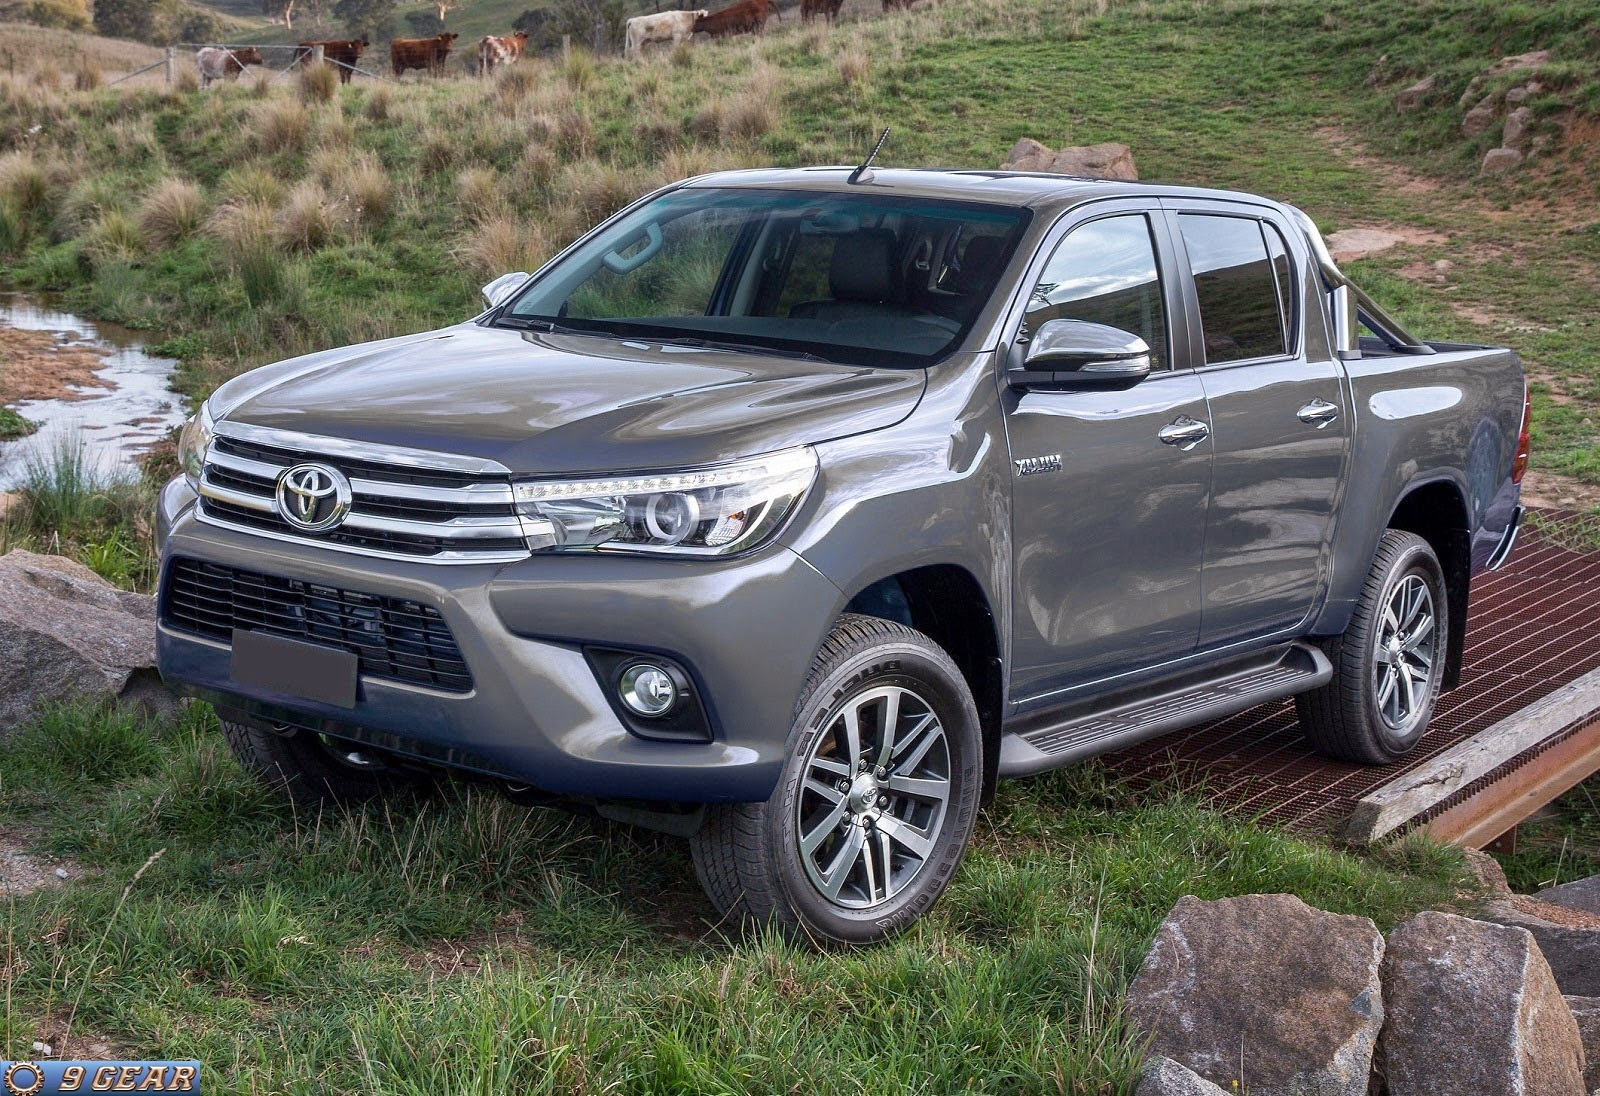 car reviews new car pictures for 2018 2019 new toyota hilux pickup truck images. Black Bedroom Furniture Sets. Home Design Ideas